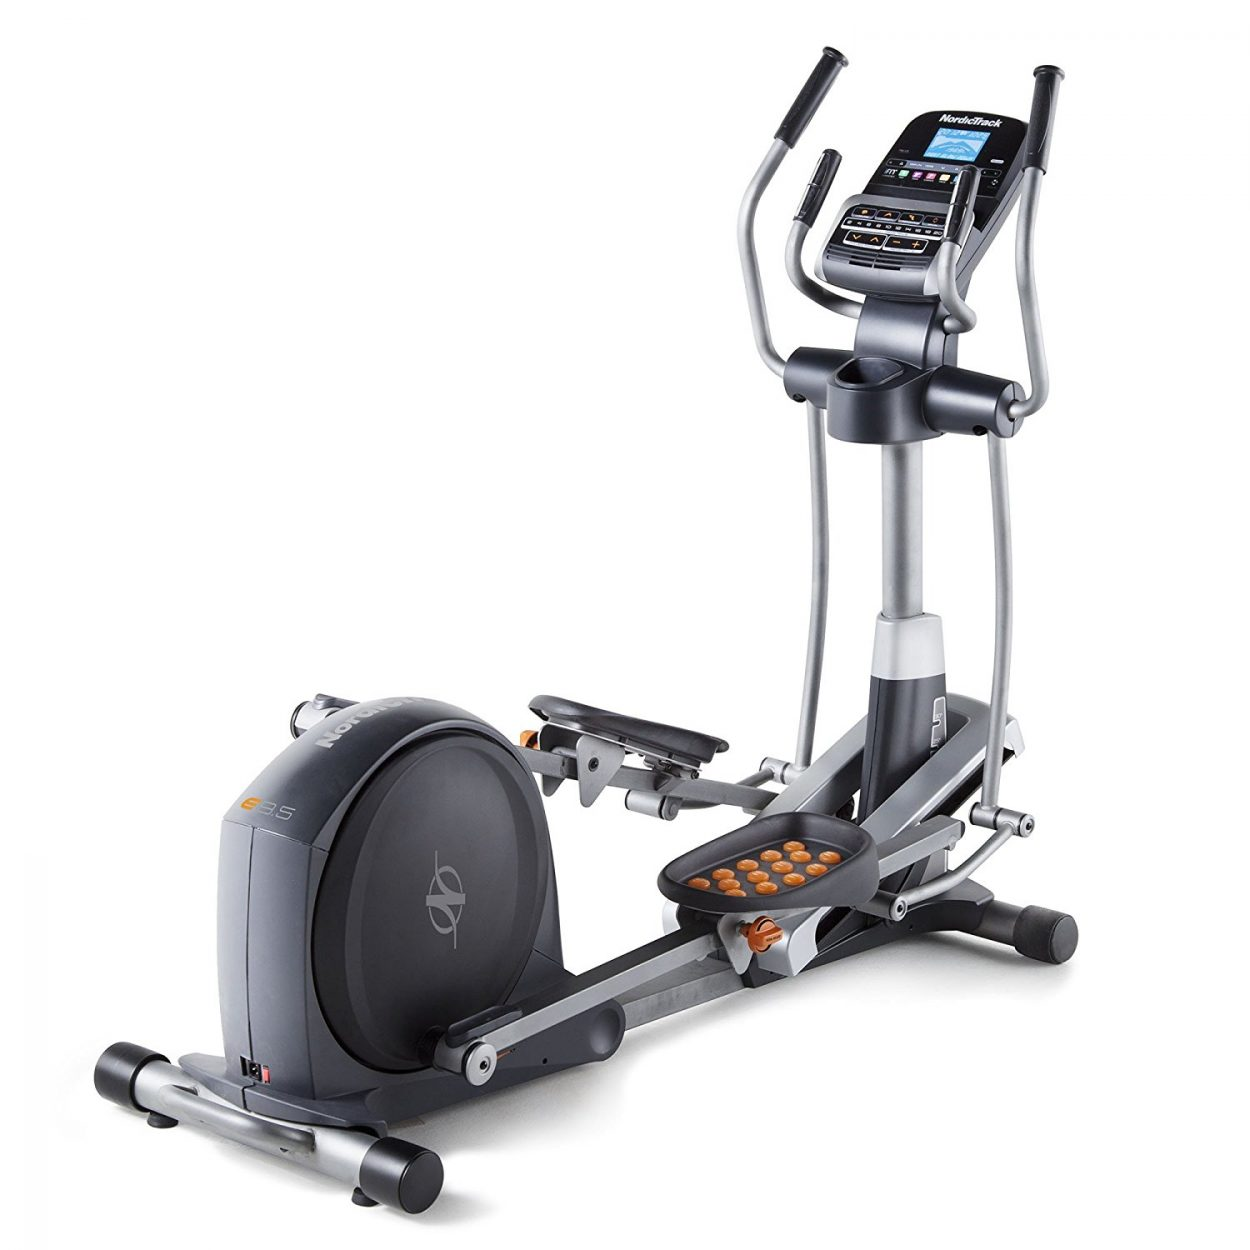 NordicTrack E11.5 Elliptical Cross Trainer